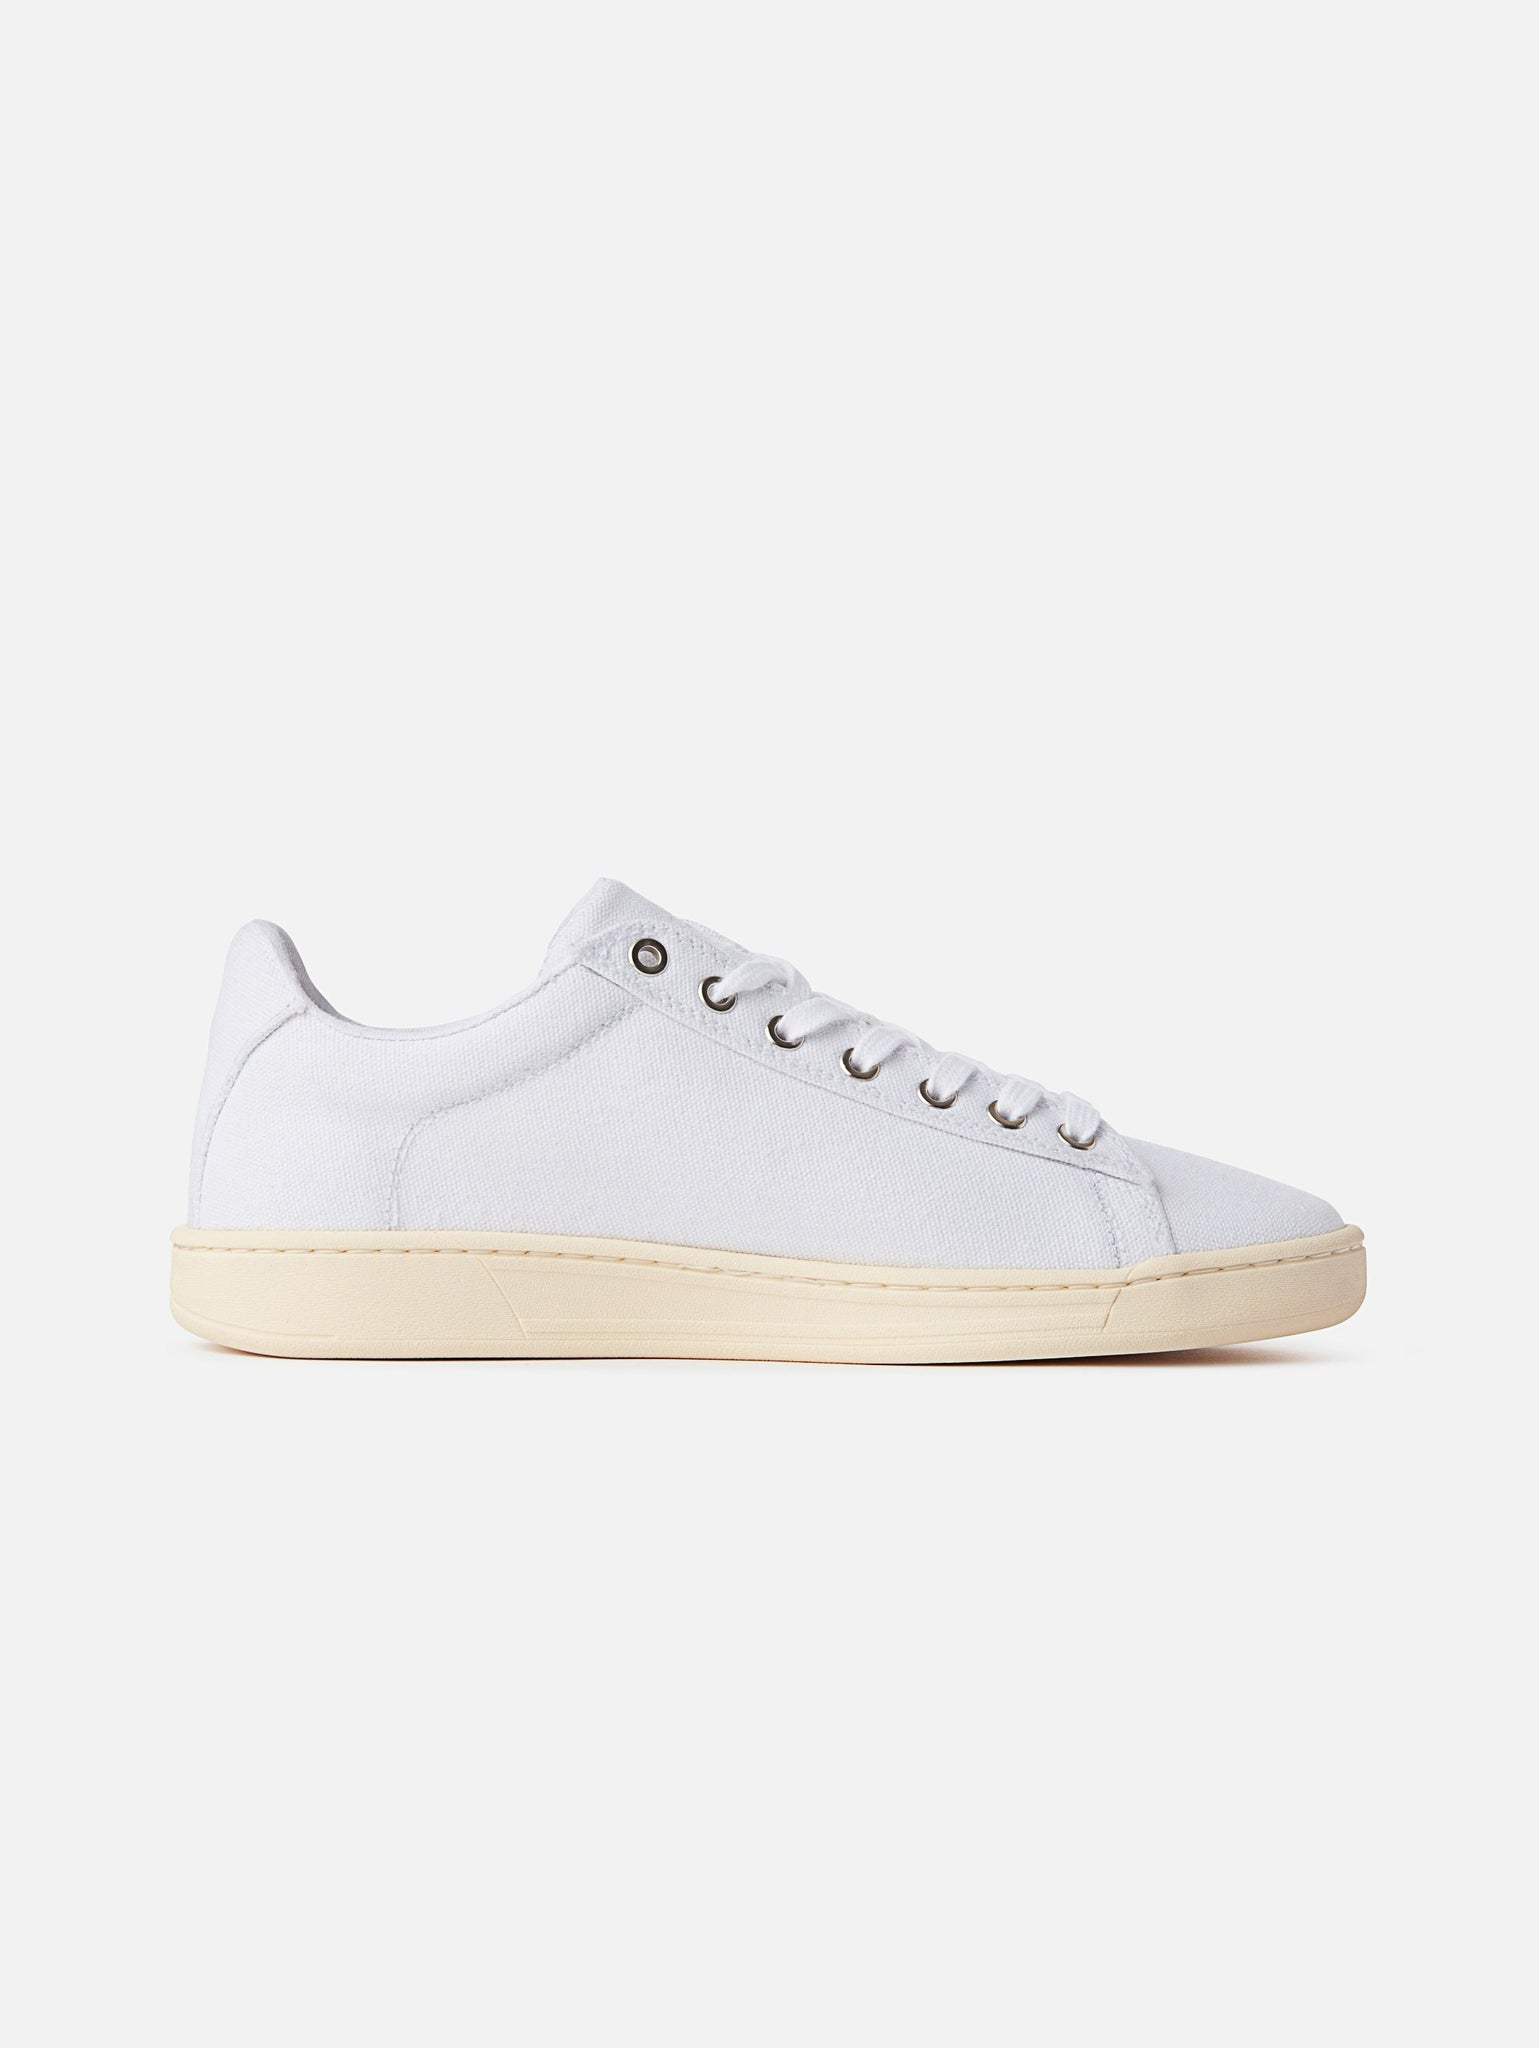 Hope - Vegan All White Canvas Shoeproduct_vendor#product_type